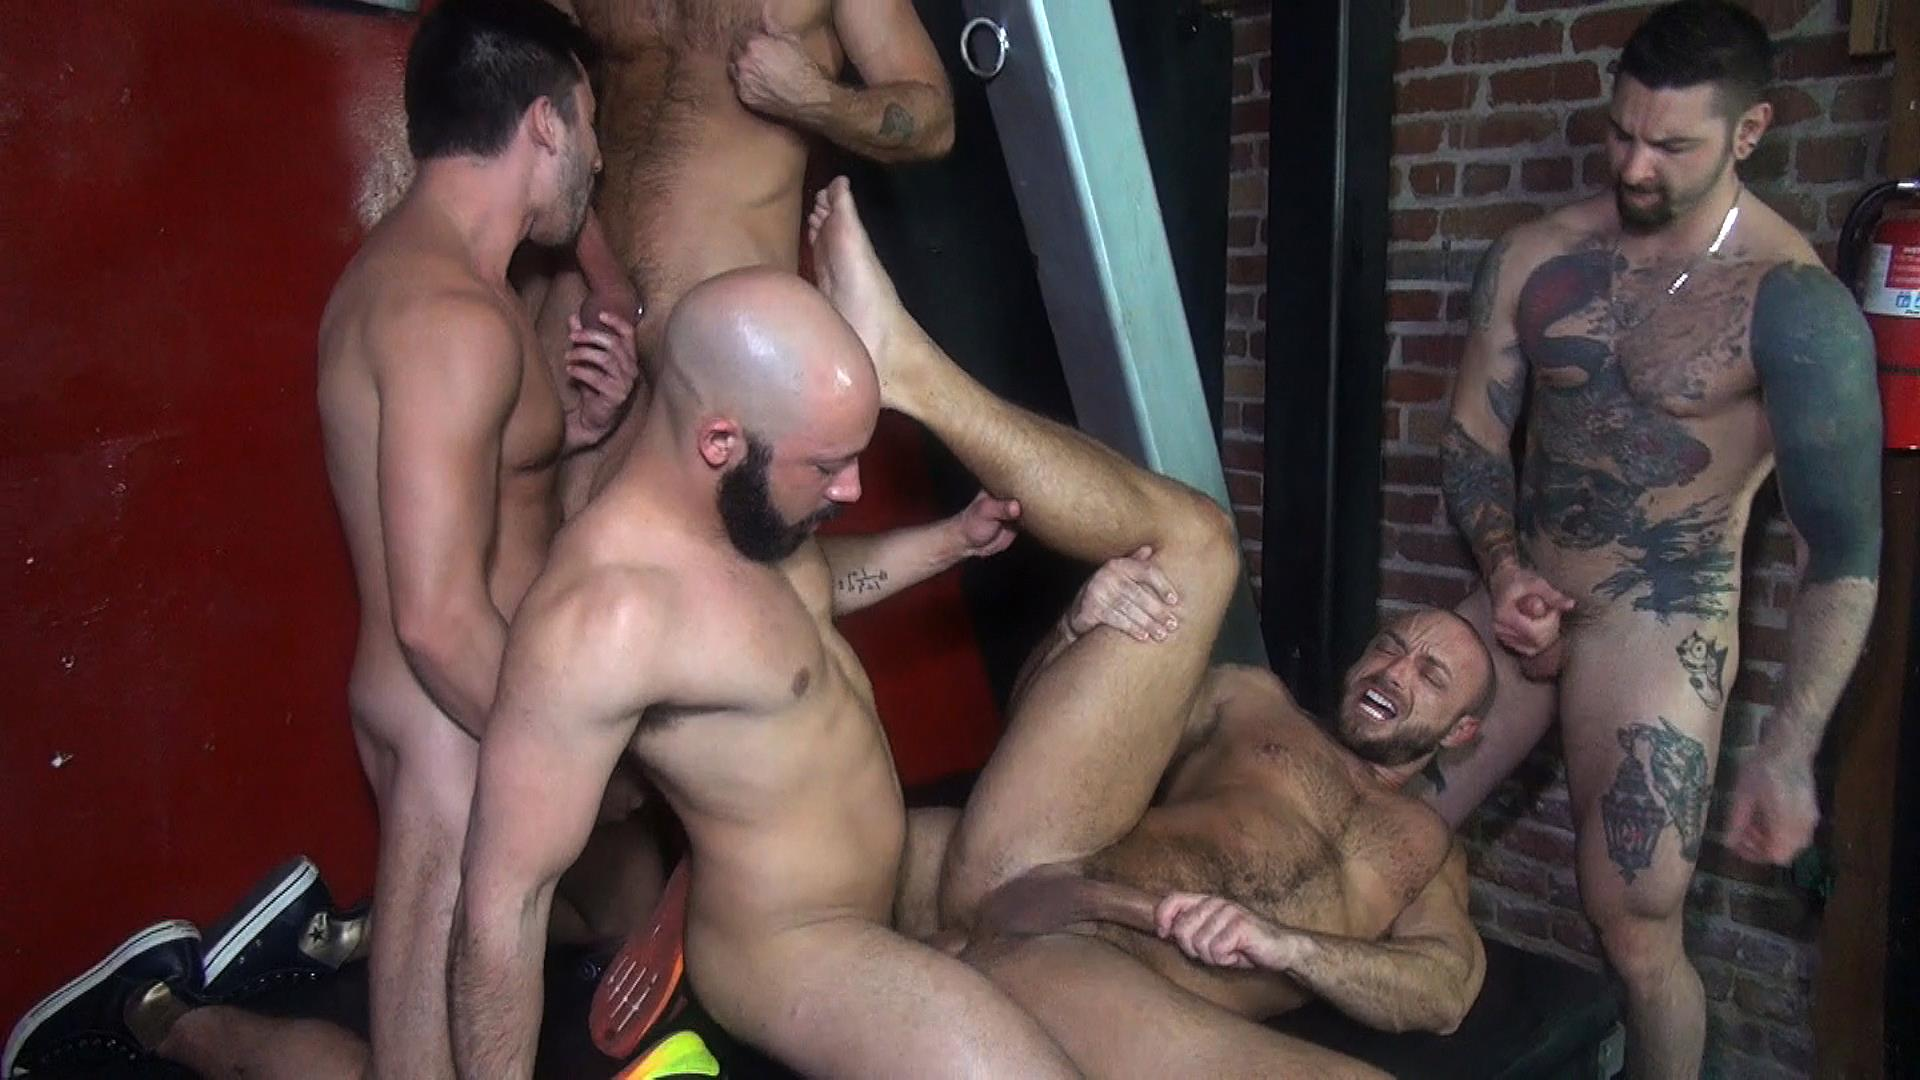 Raw-Fuck-Club-Dylan-Strokes-and-Scott-DeMarco-and-Jack-Andy-and-Jessie-Colter-and-Teddy-Bryce-Bareback-Sex-Video-09 Jessie Colter's First Bareback Gangbang At A Sleazy Bathhouse